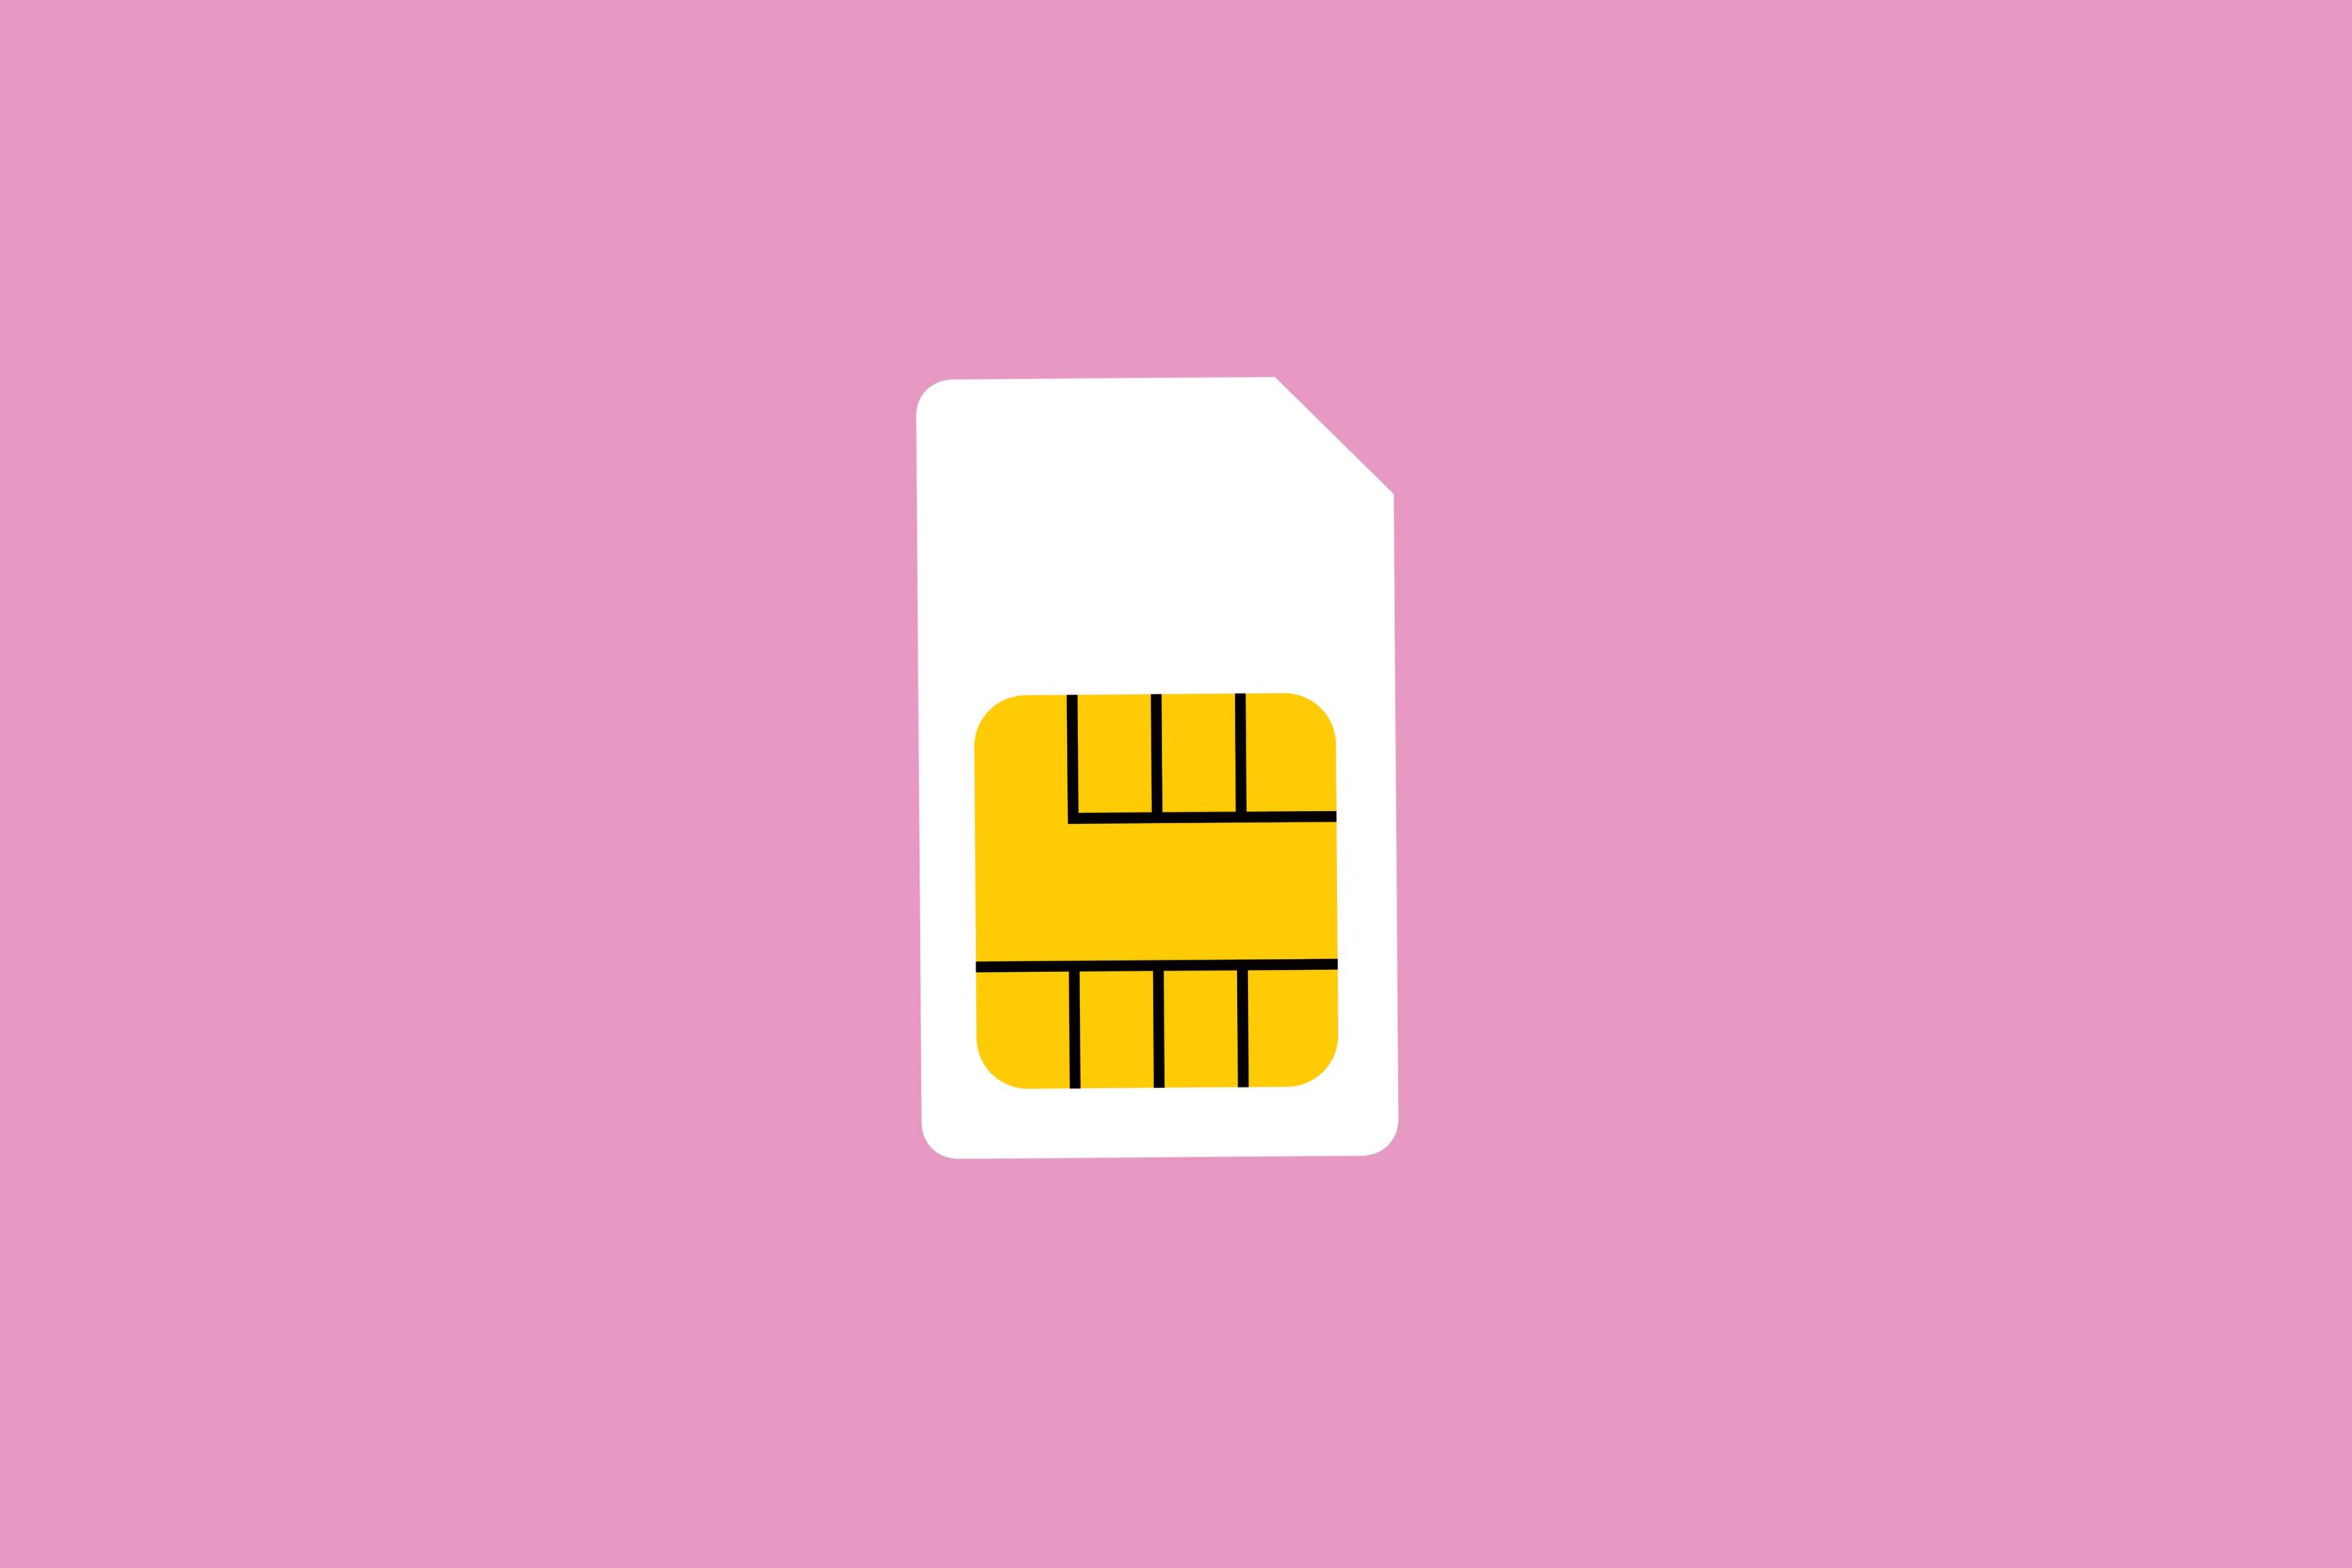 If you want online privacy, change your phone number | WIRED UK